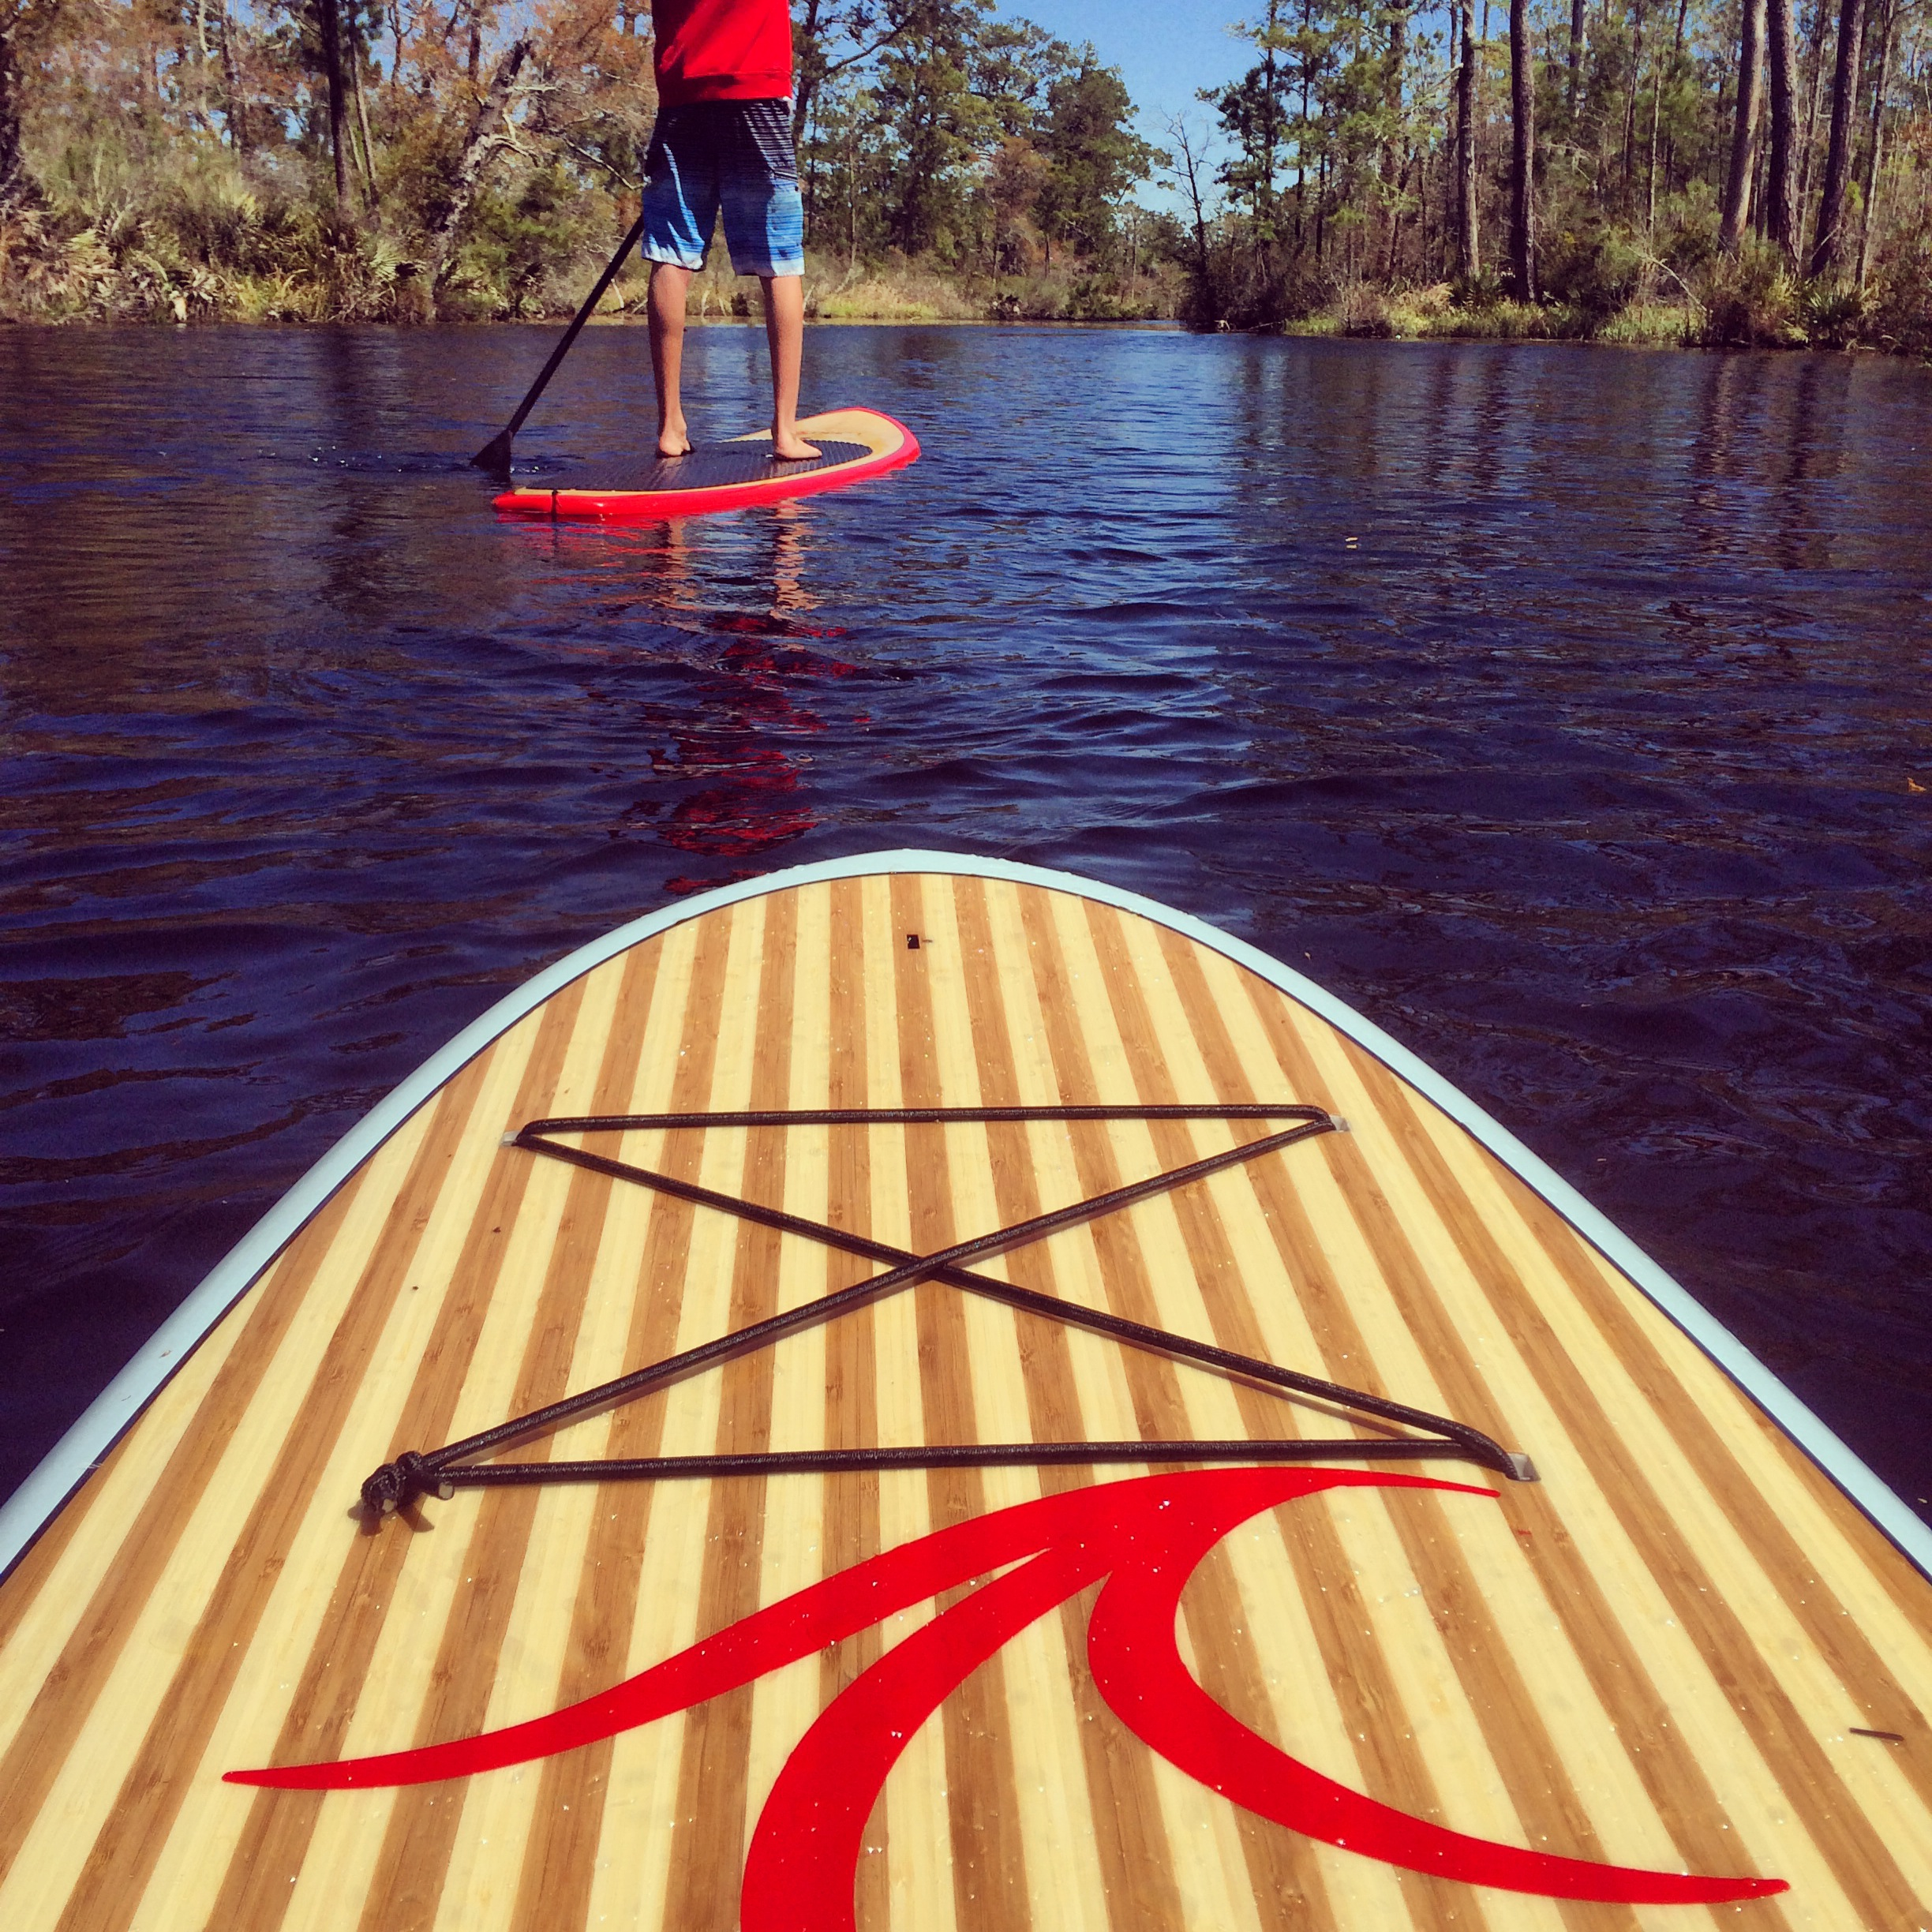 11' Balance and 10' Easy Rider by JB Boards...New River